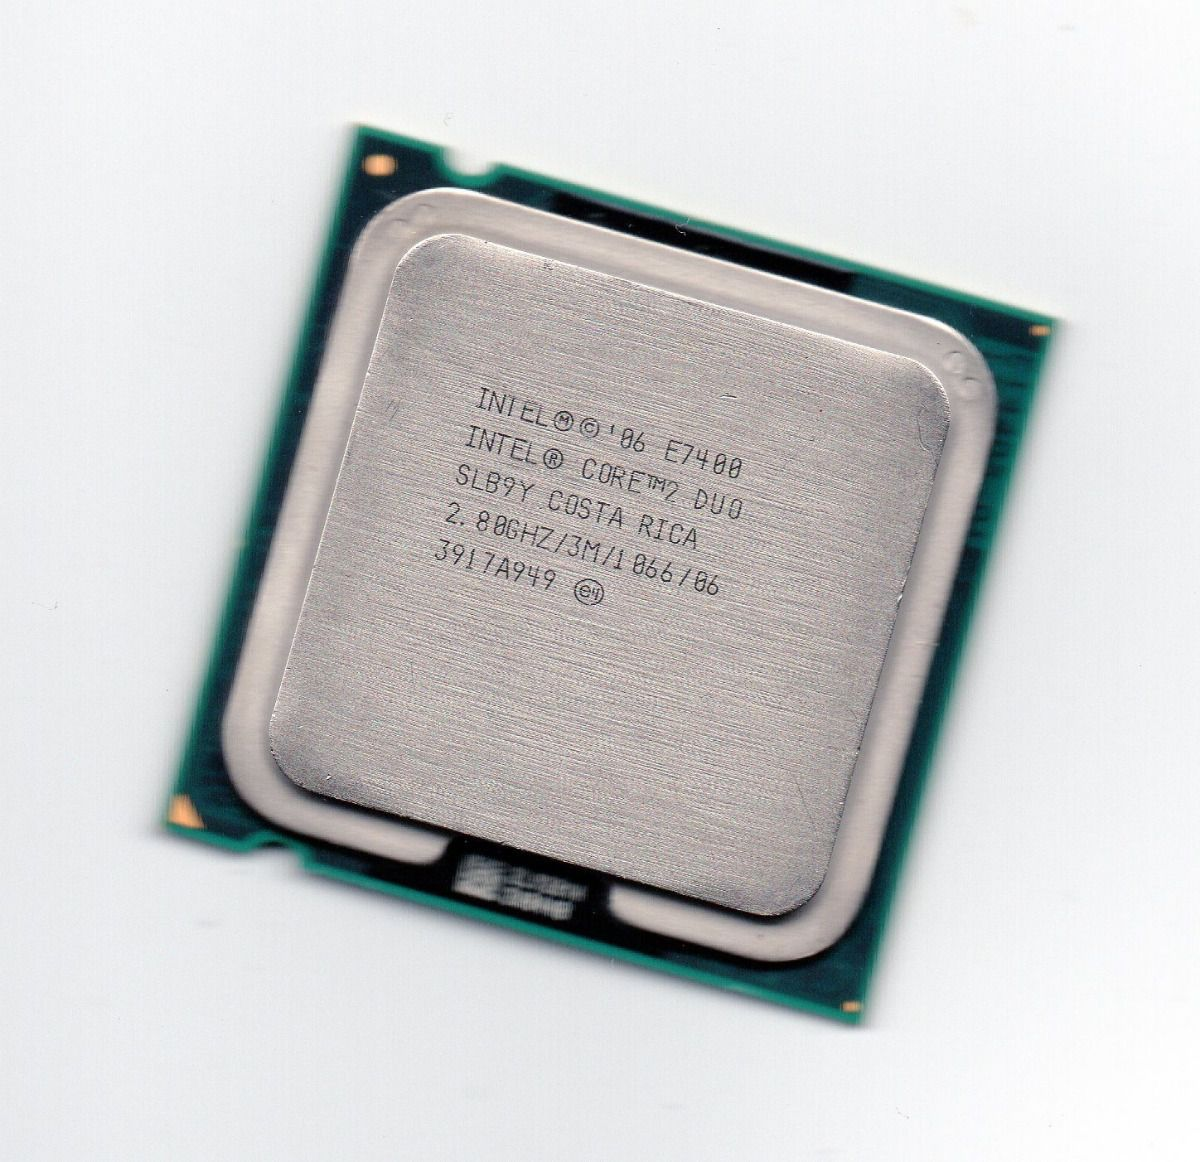 CPU 775 | CORE 2 DUO E7400 | SLB9Y | INTEL | 2.80 GHZ